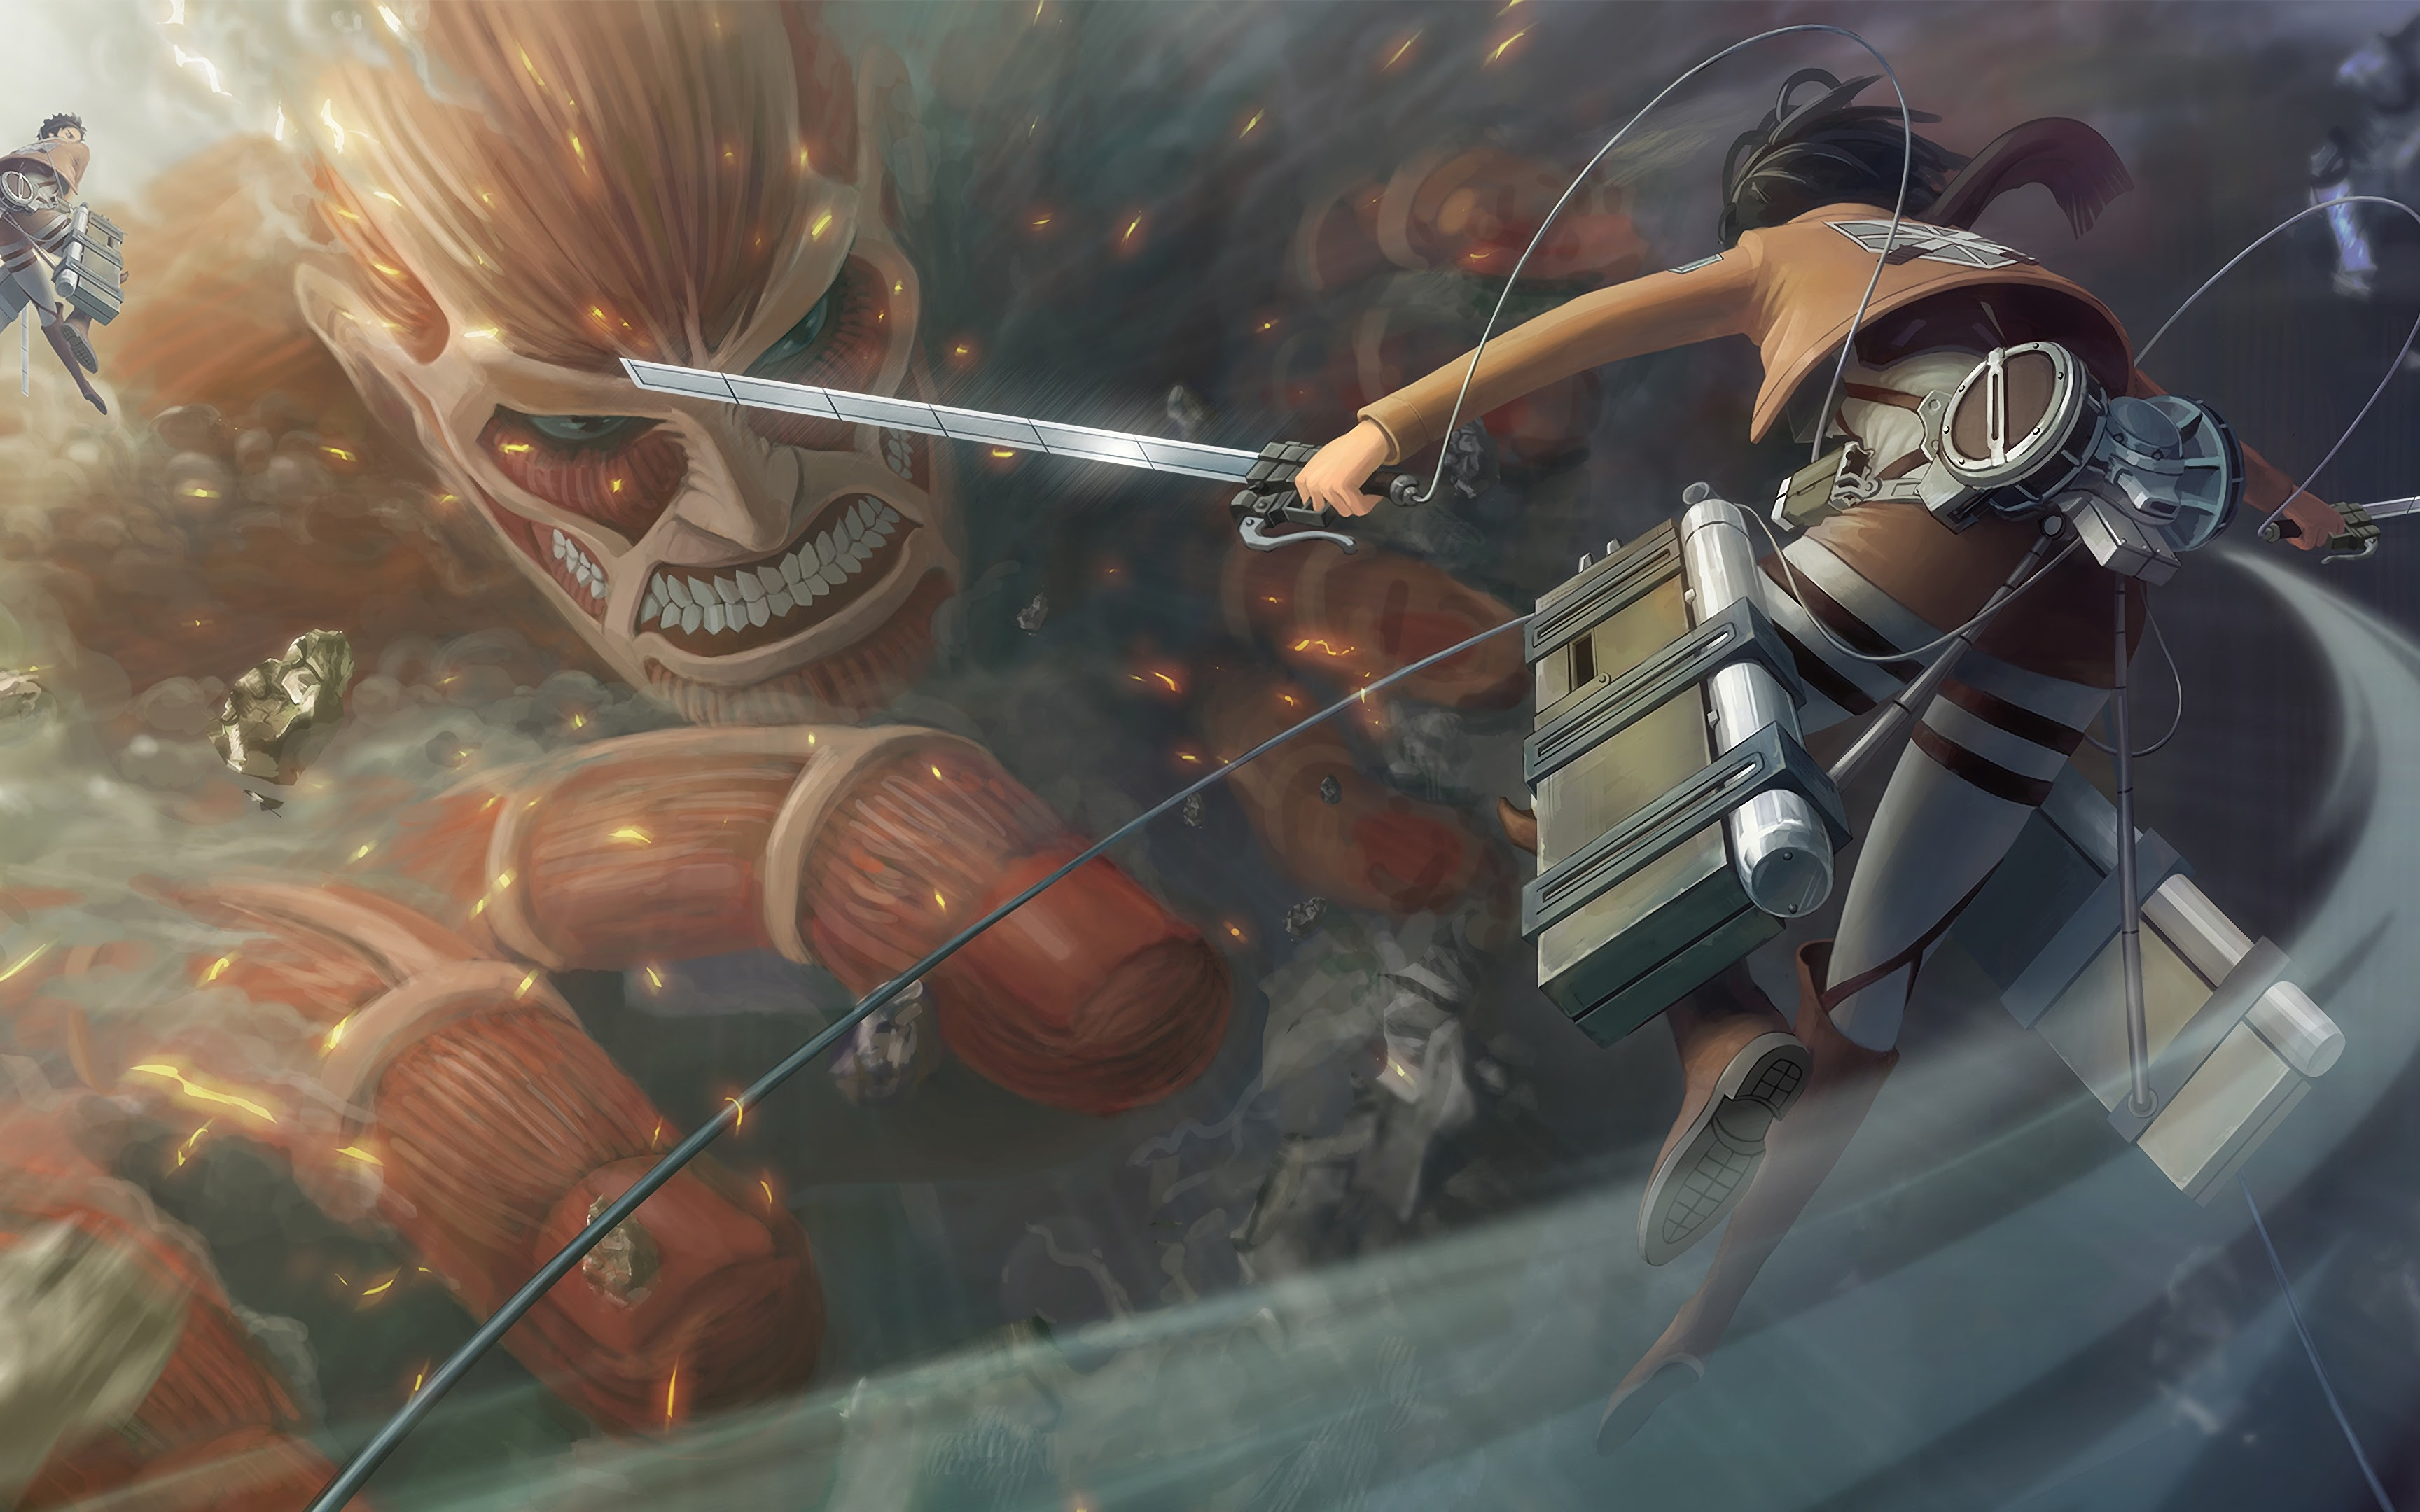 Attack on titans hd 4k wallpapers for android apk download. Colossal Titan, Attack on Titan, 4K, #22 Wallpaper